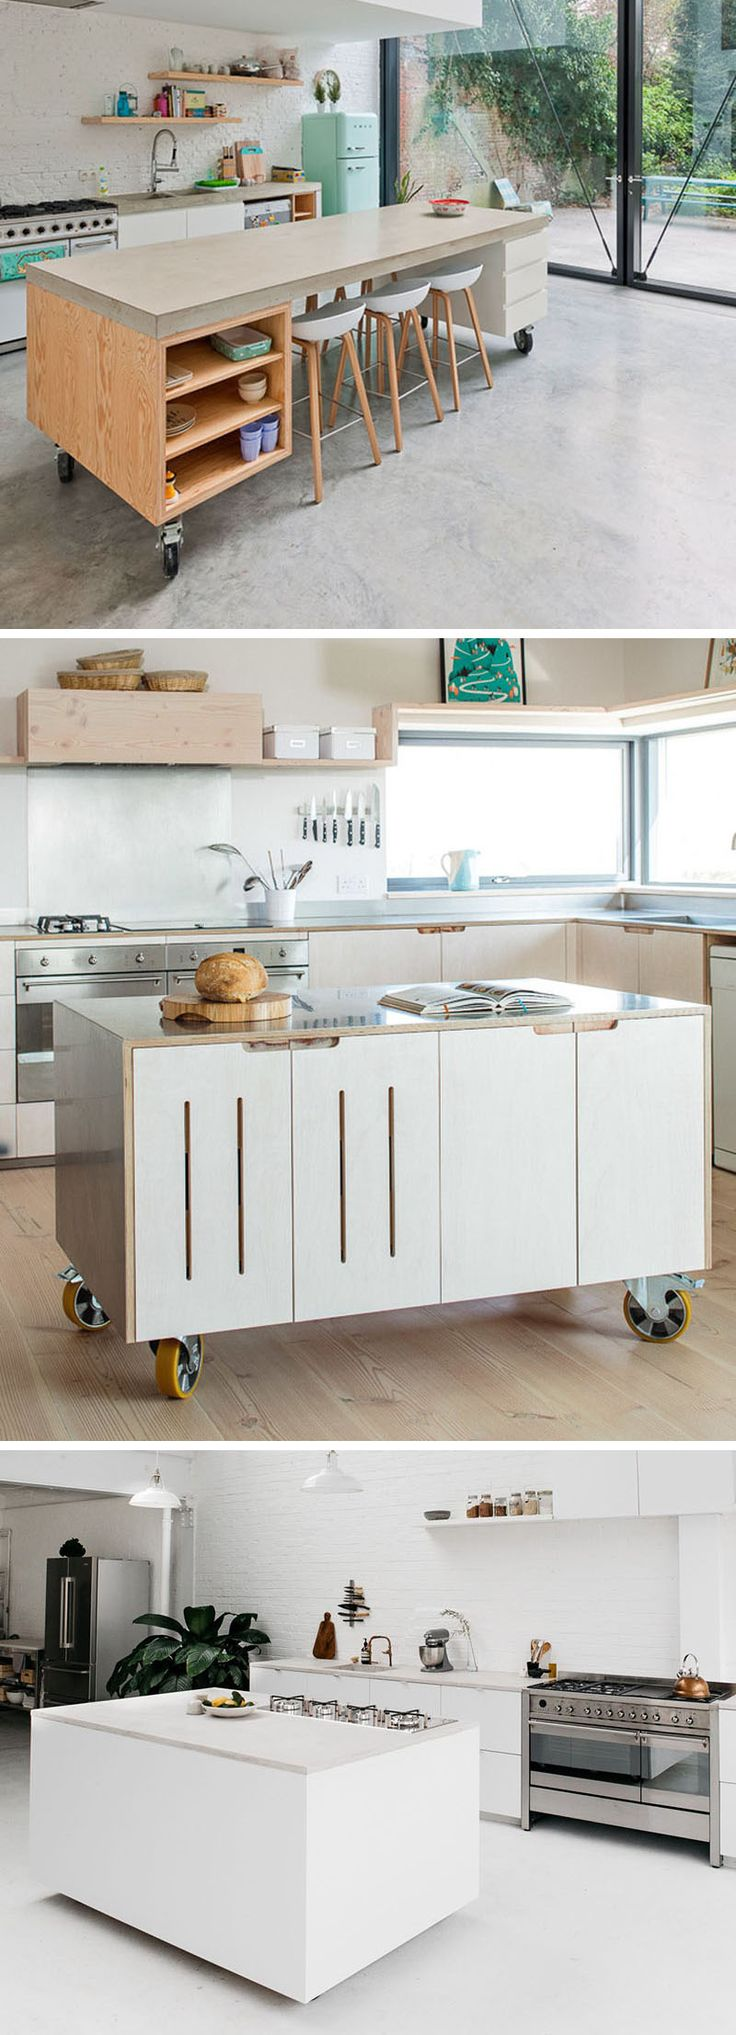 best 25 moveable kitchen island ideas on pinterest kitchen 8 examples of kitchens with movable islands that make it easy to change the layout